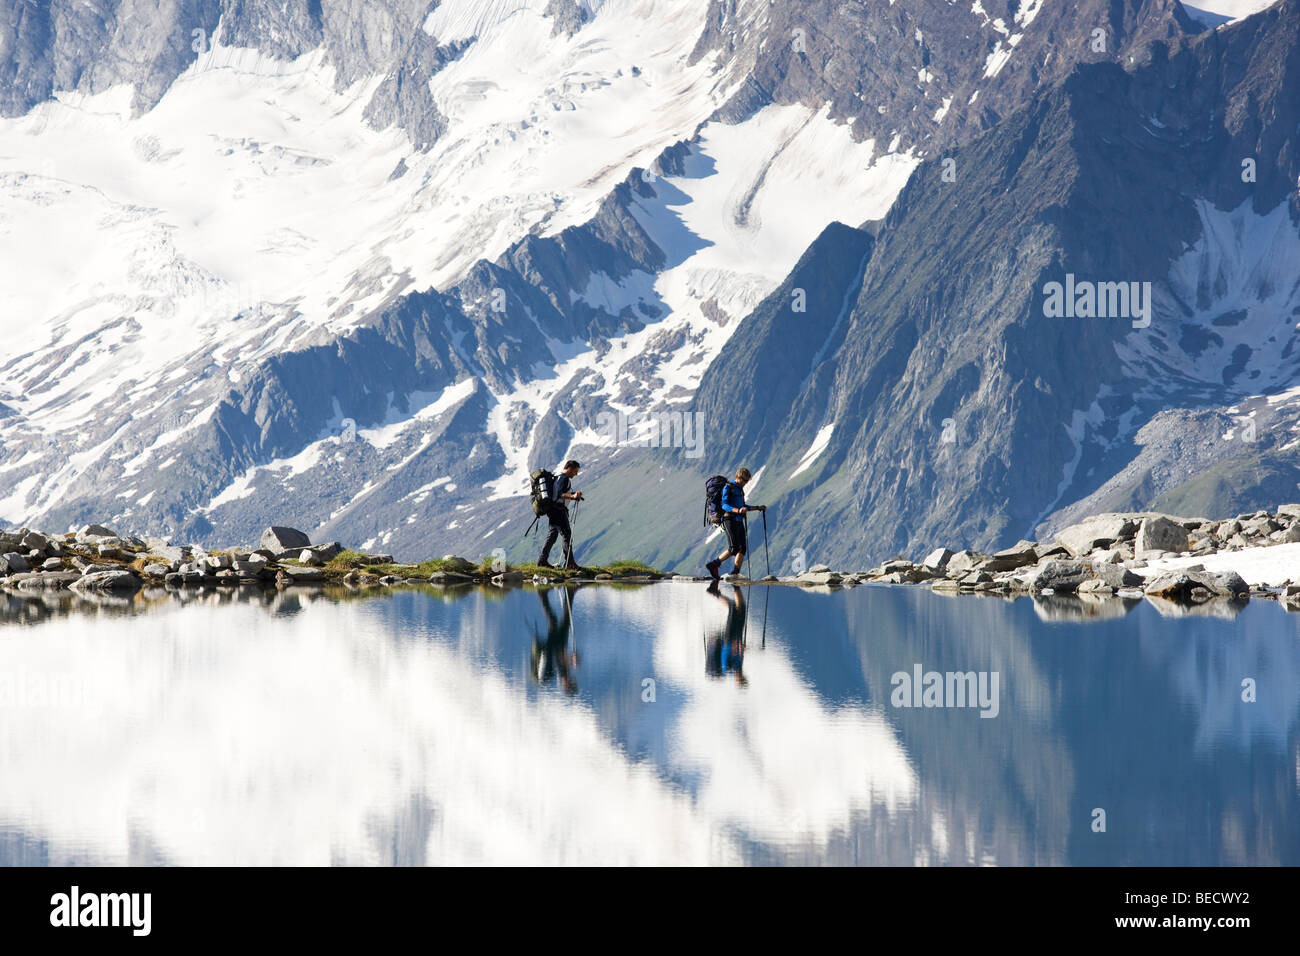 Hikers on the shore of the Friesenbergsee lake, Zillertal Alps, Northern Tyrol, Austria, Europe - Stock Image